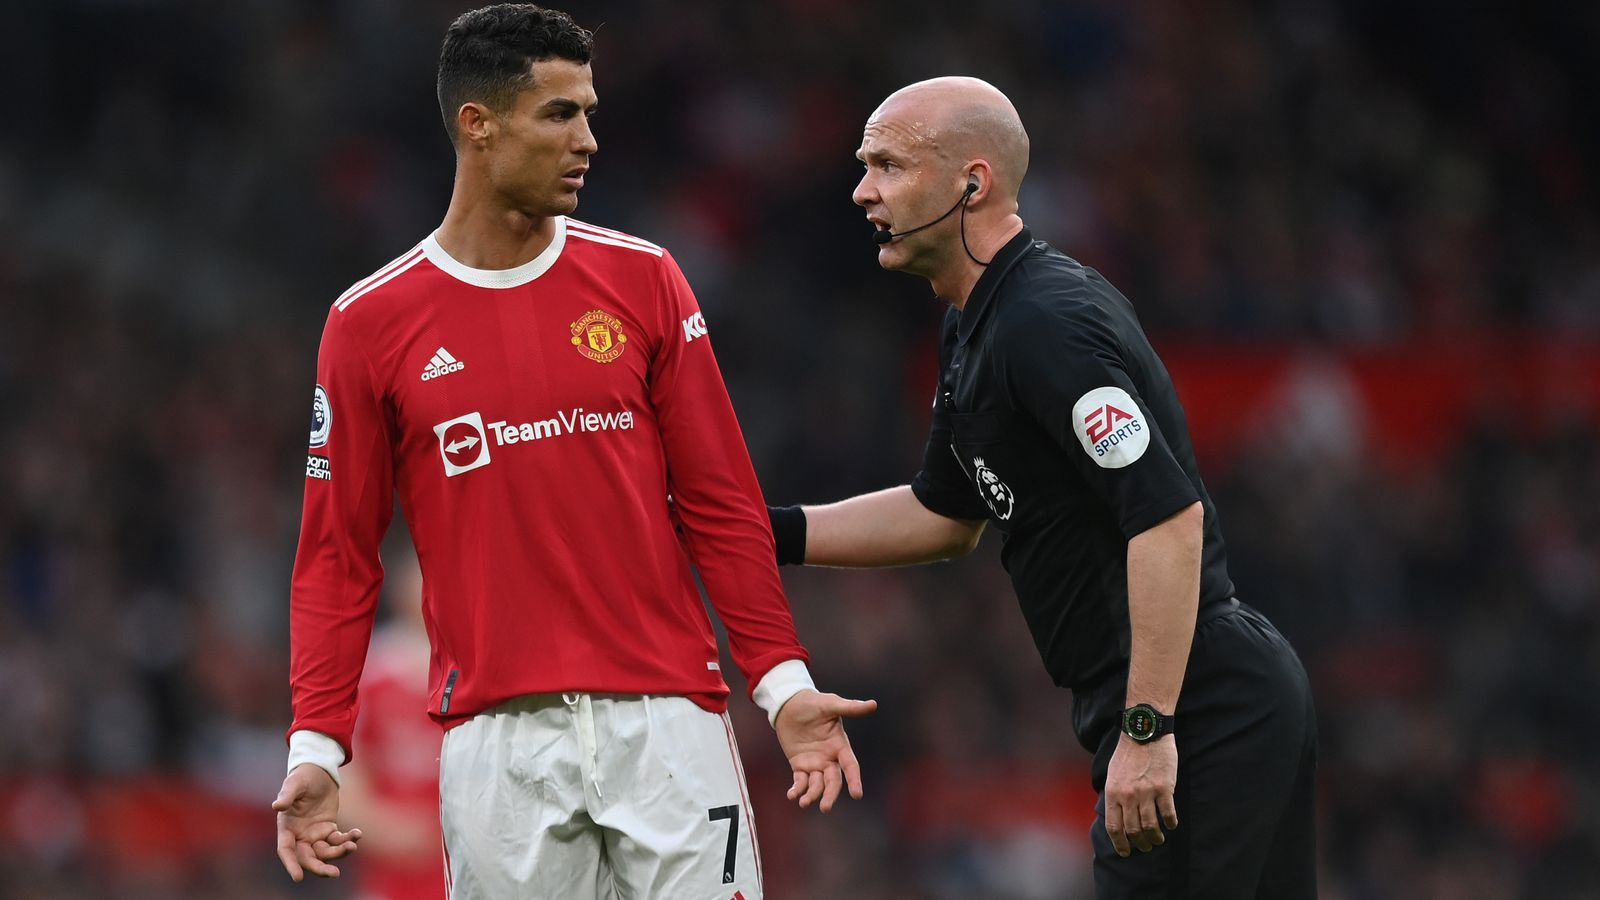 Ref Watch: Manchester United's Cristiano Ronaldo lucky not to suffer same fate as Paul Pogba, says Dermot Gallagher